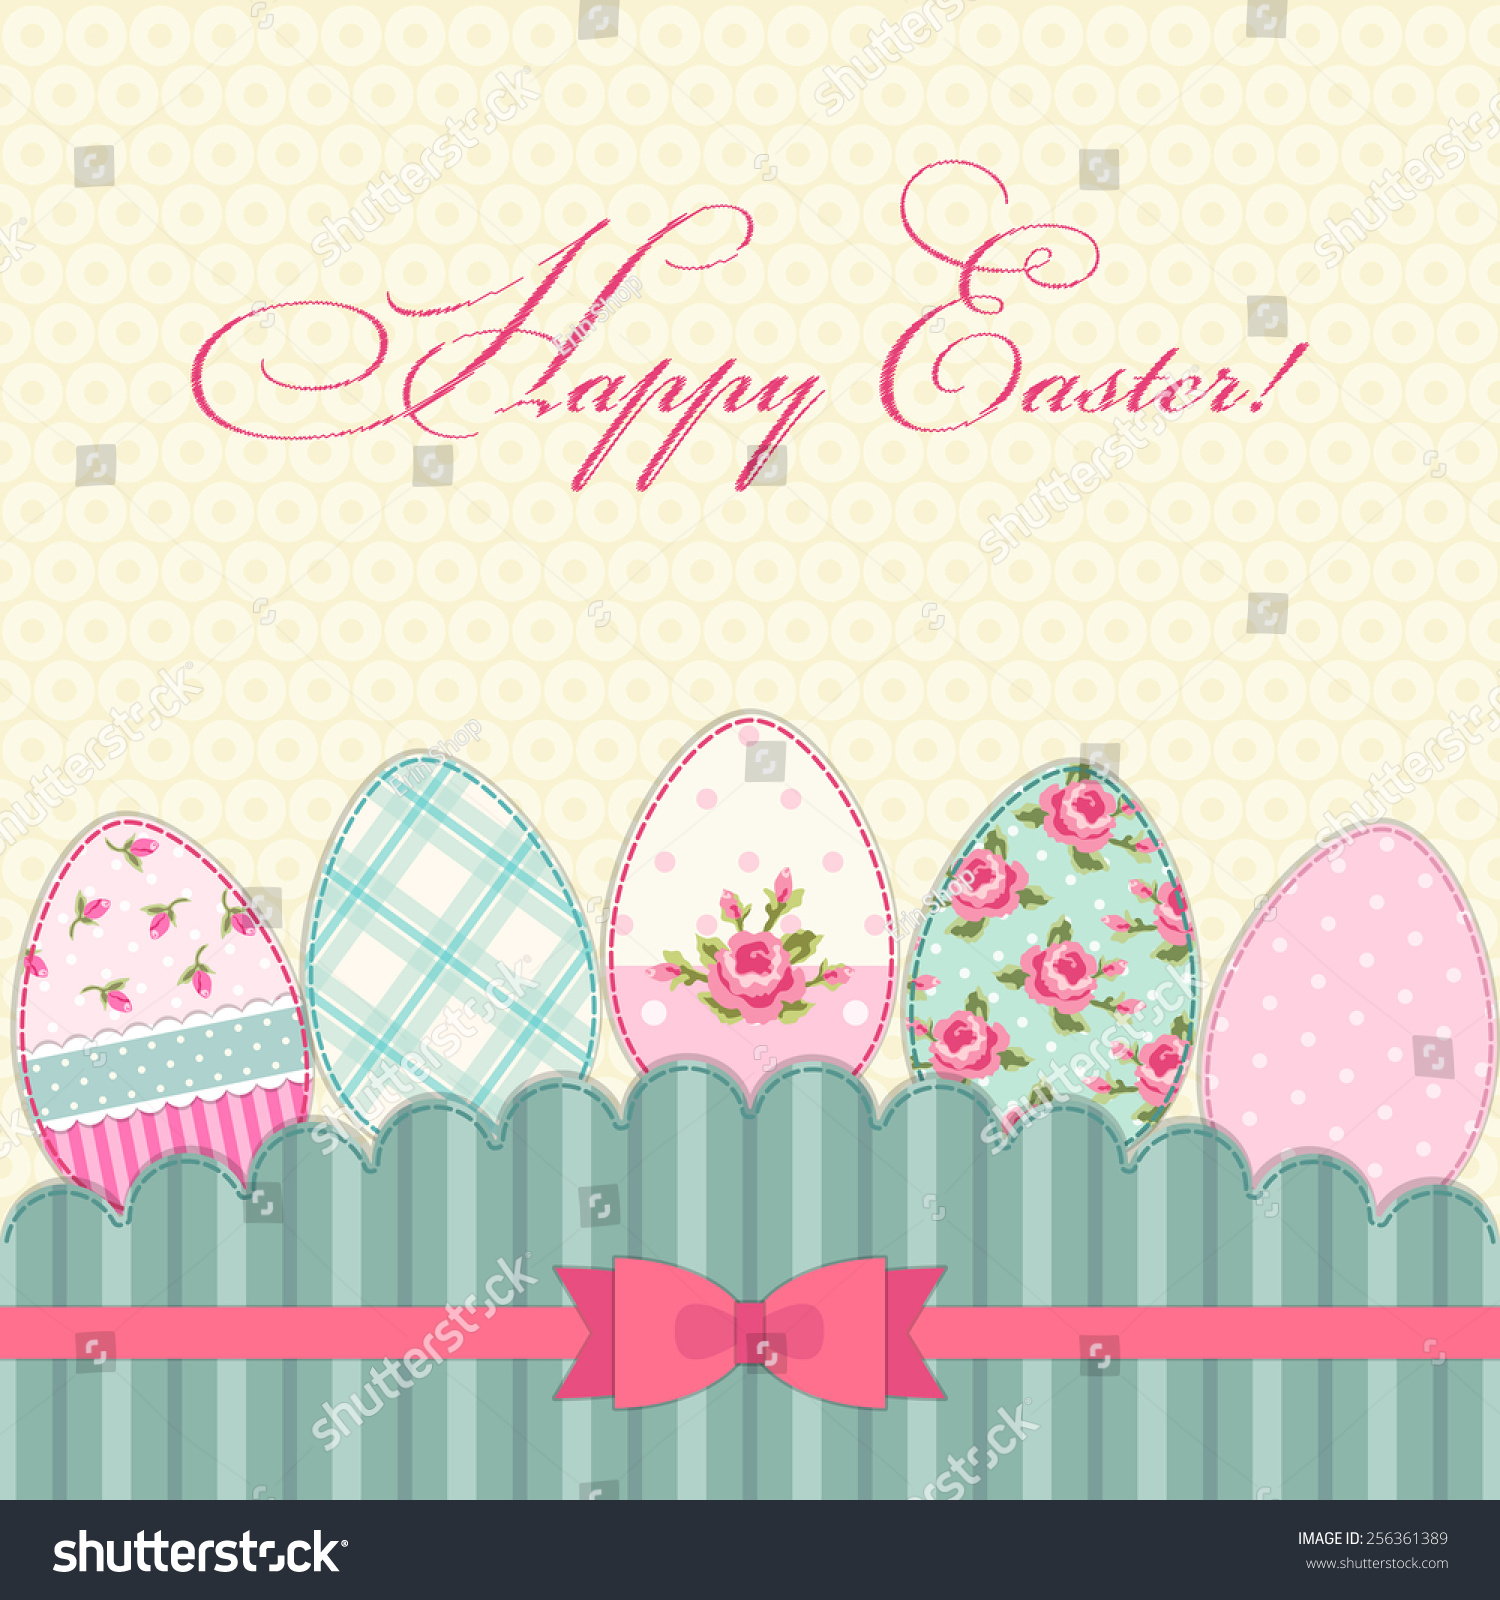 Cute vintage happy easter greeting card stock illustration 256361389 cute vintage happy easter greeting card with patch fabric applique of eggs in shabby chic style m4hsunfo